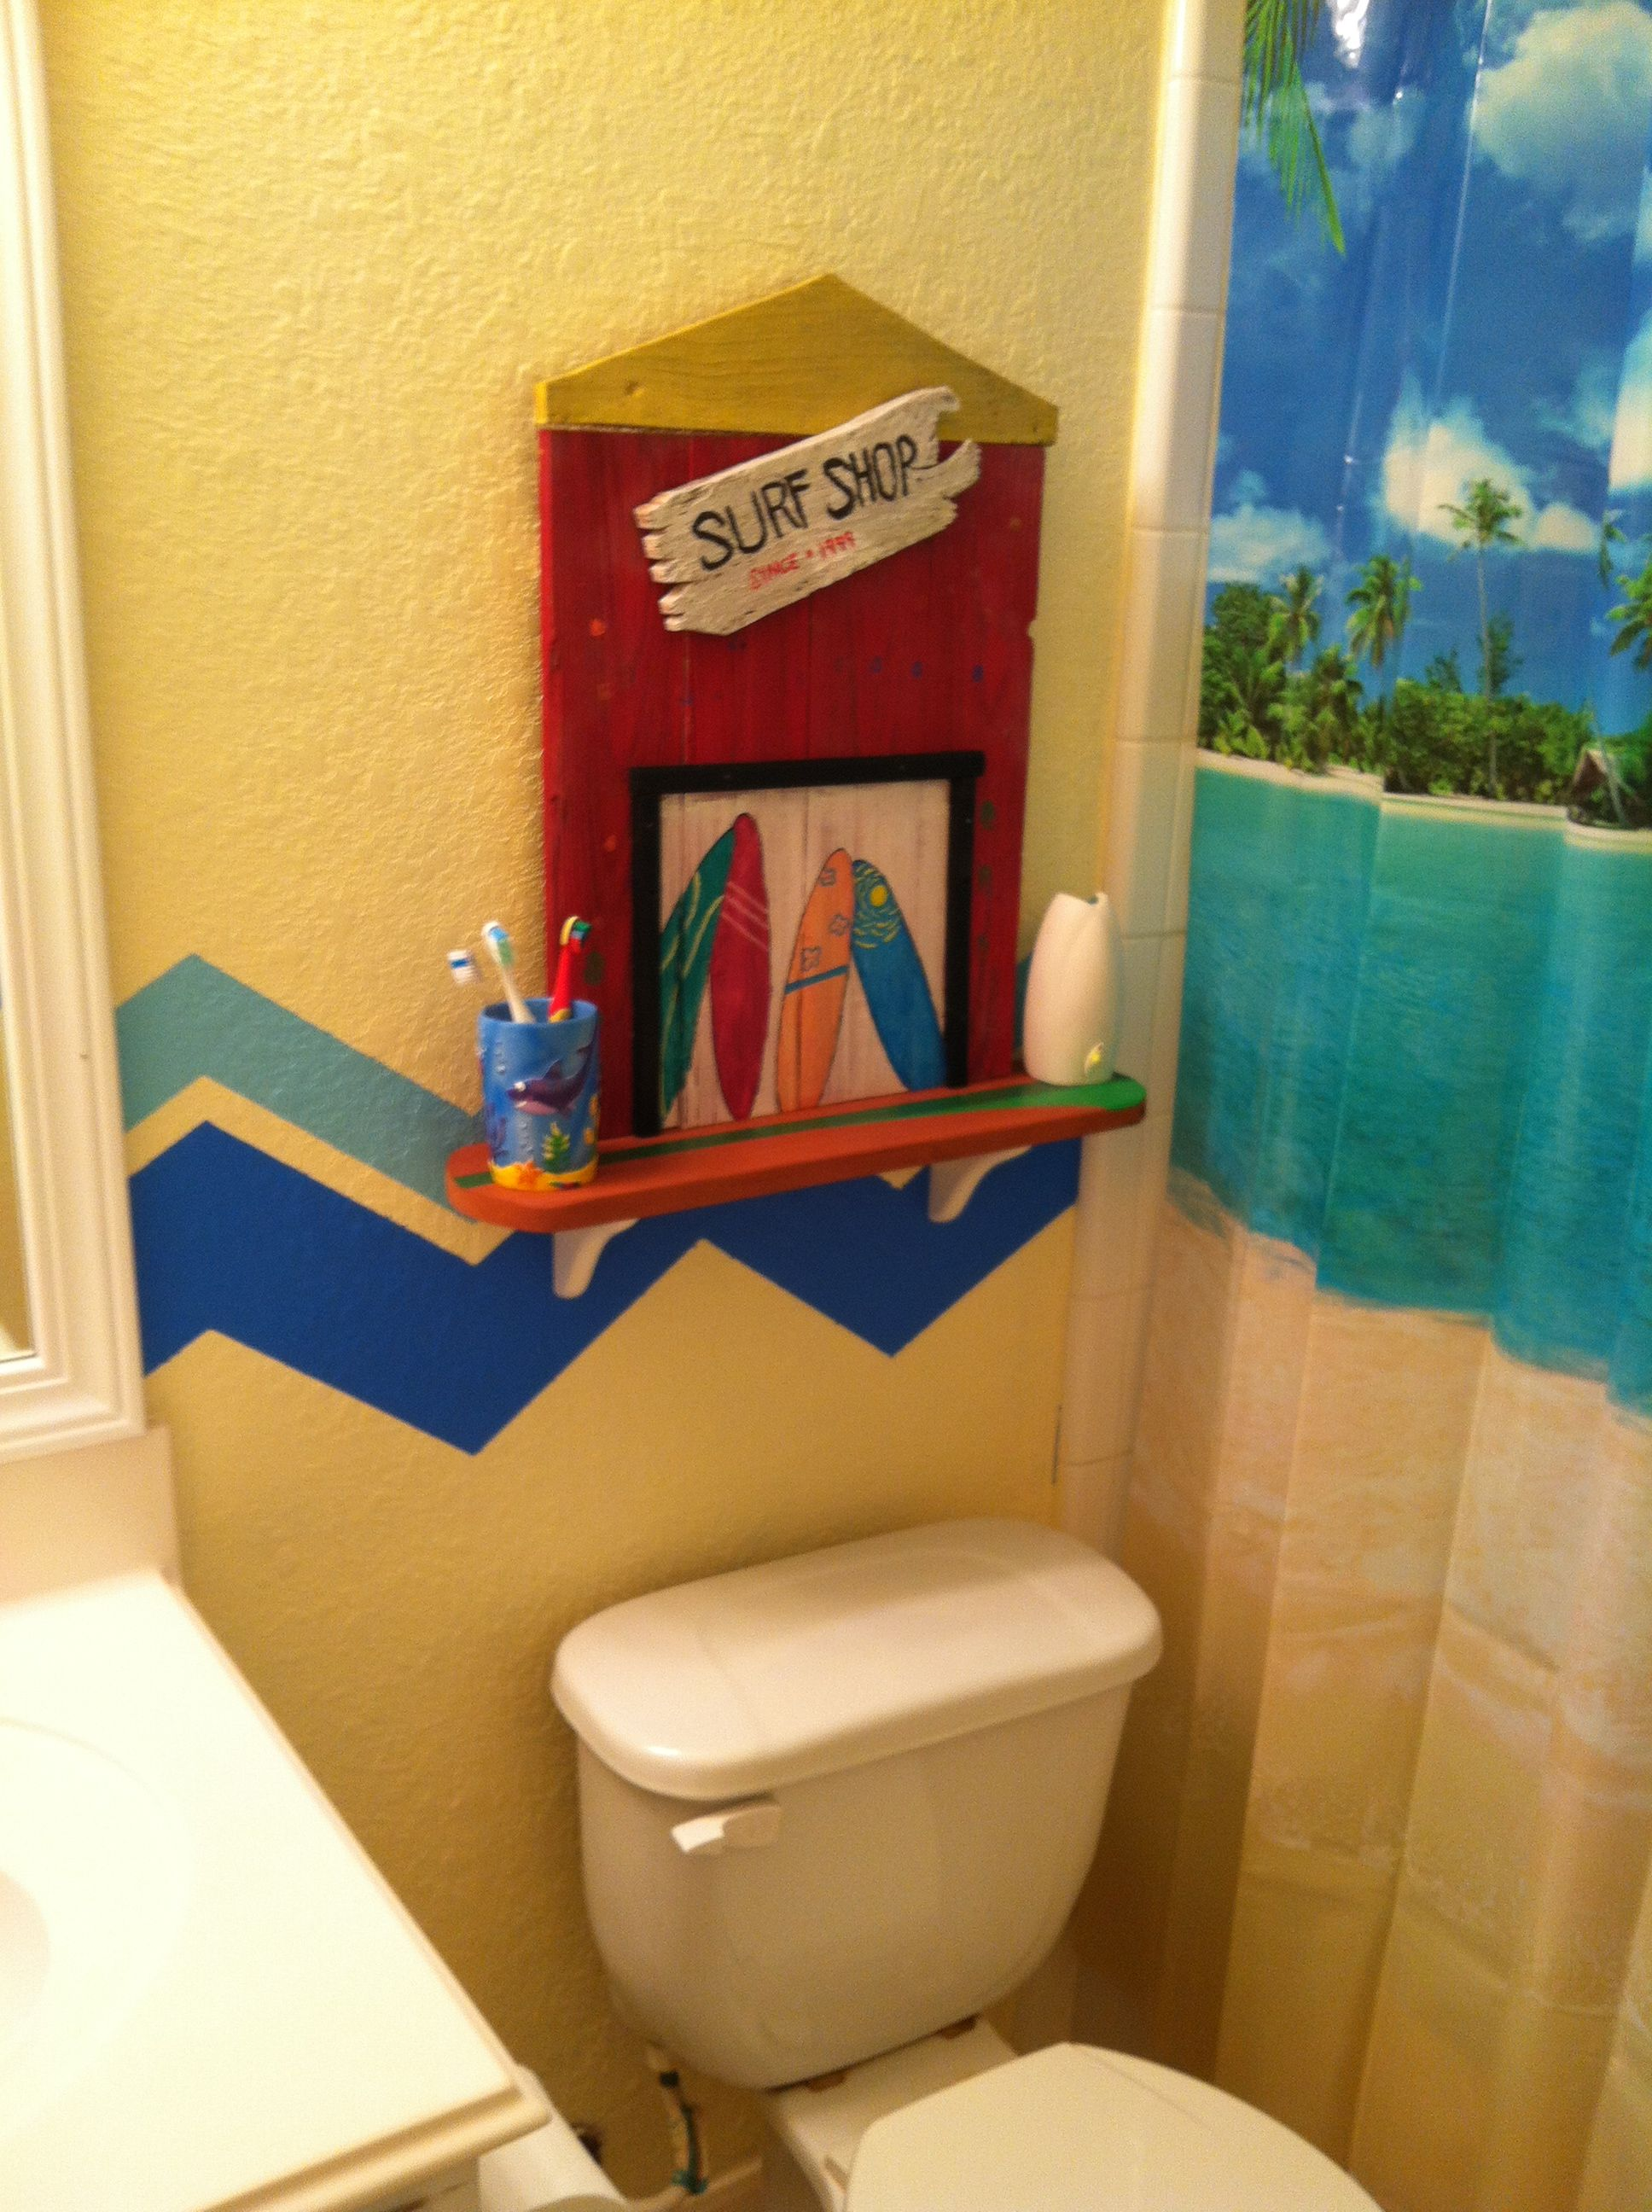 surf shop shelf for the surf themed bathroom made from leftover wood and painted by mom and the